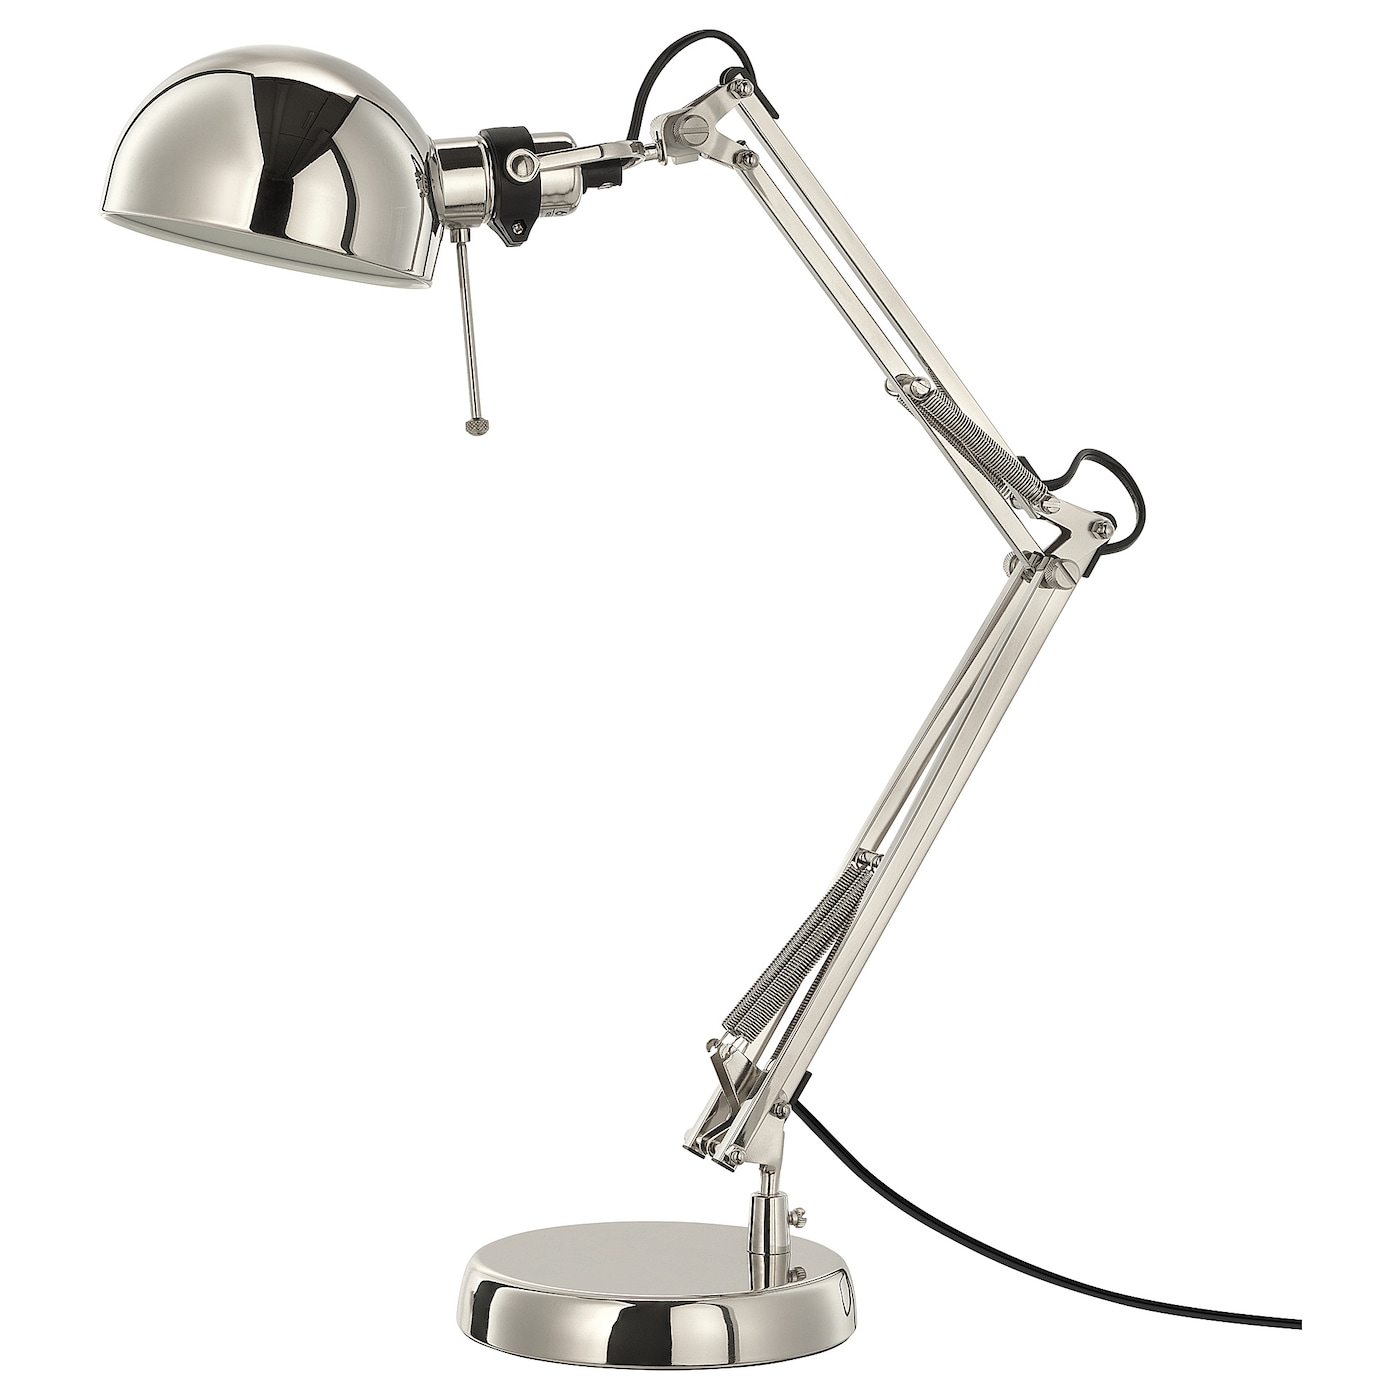 IKEA | Work Lamps, LED Desk Lamps & Clamp Spotlights